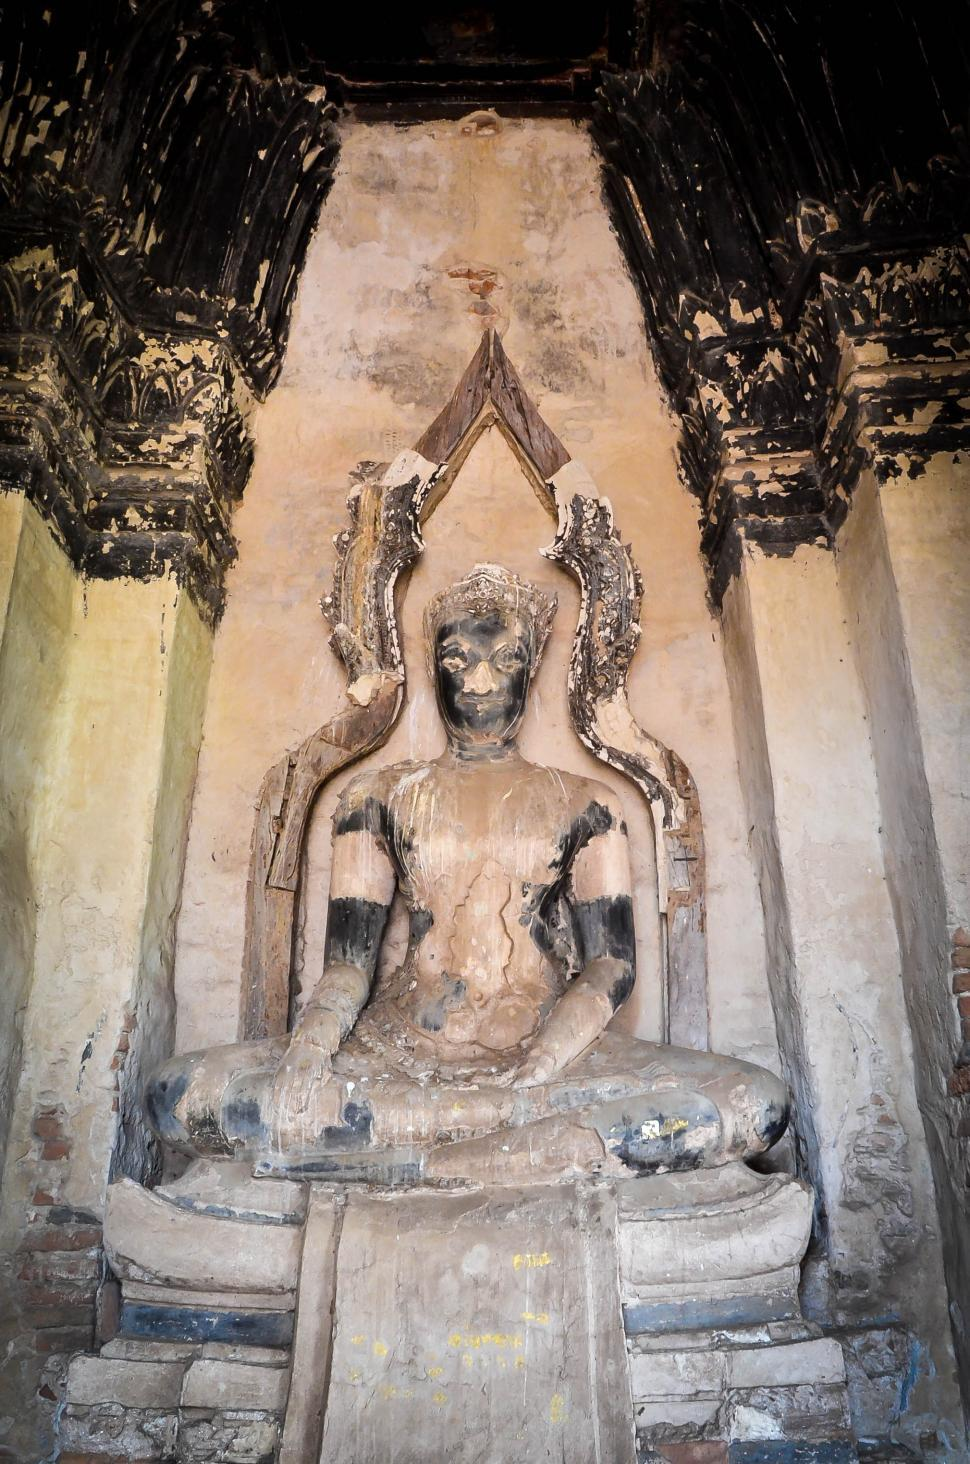 Download Free Stock HD Photo of Buddha Statue in Crumbling Ruins Online